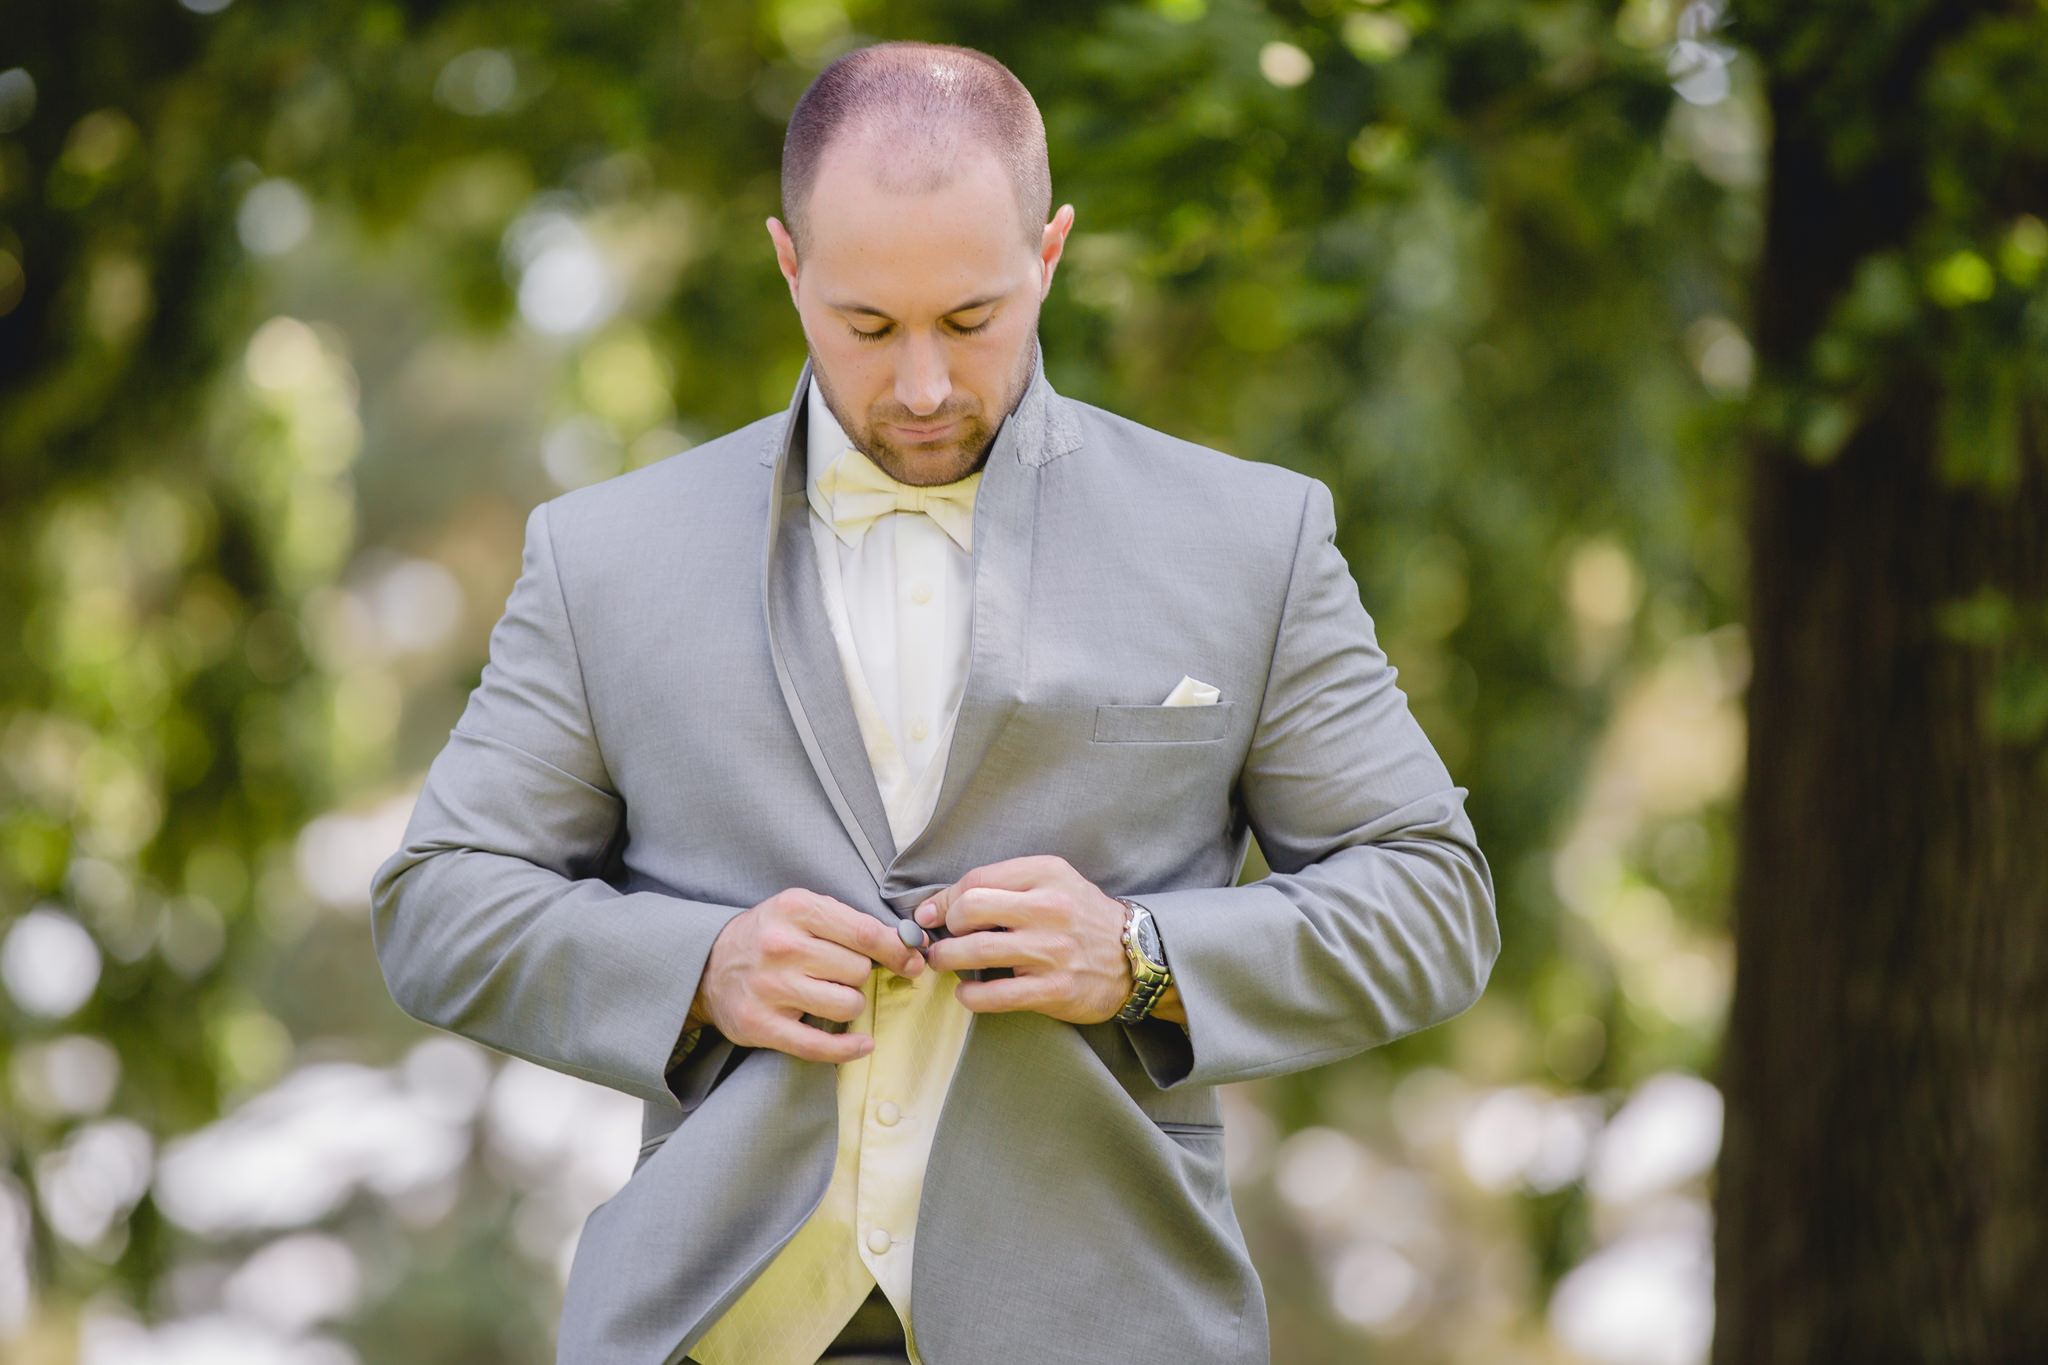 Groom buttoning his tuxedo jacket